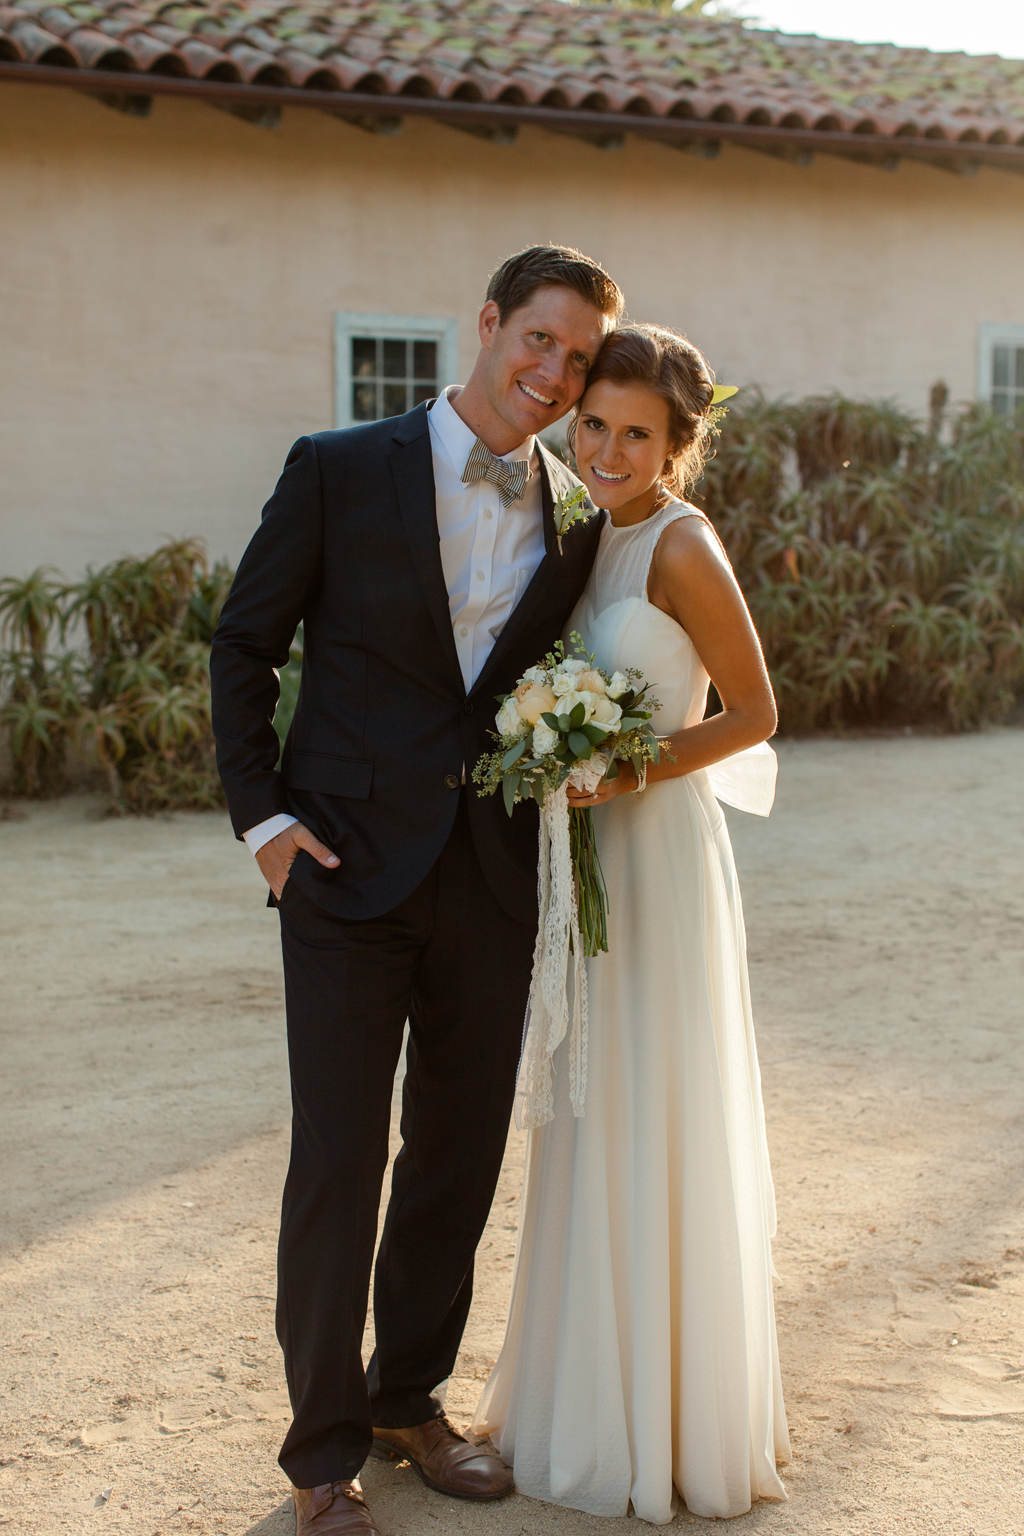 kylee-david-california-beach-wedding-17.jpg